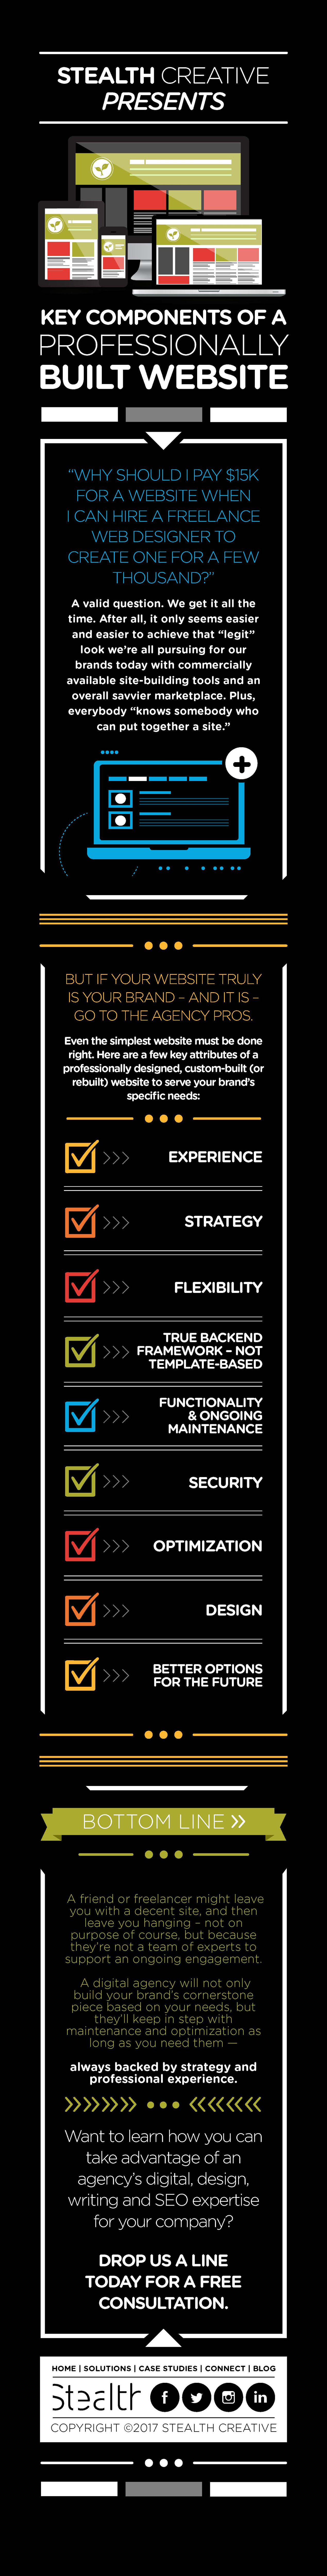 Key Components of Professionally Built Website infographic